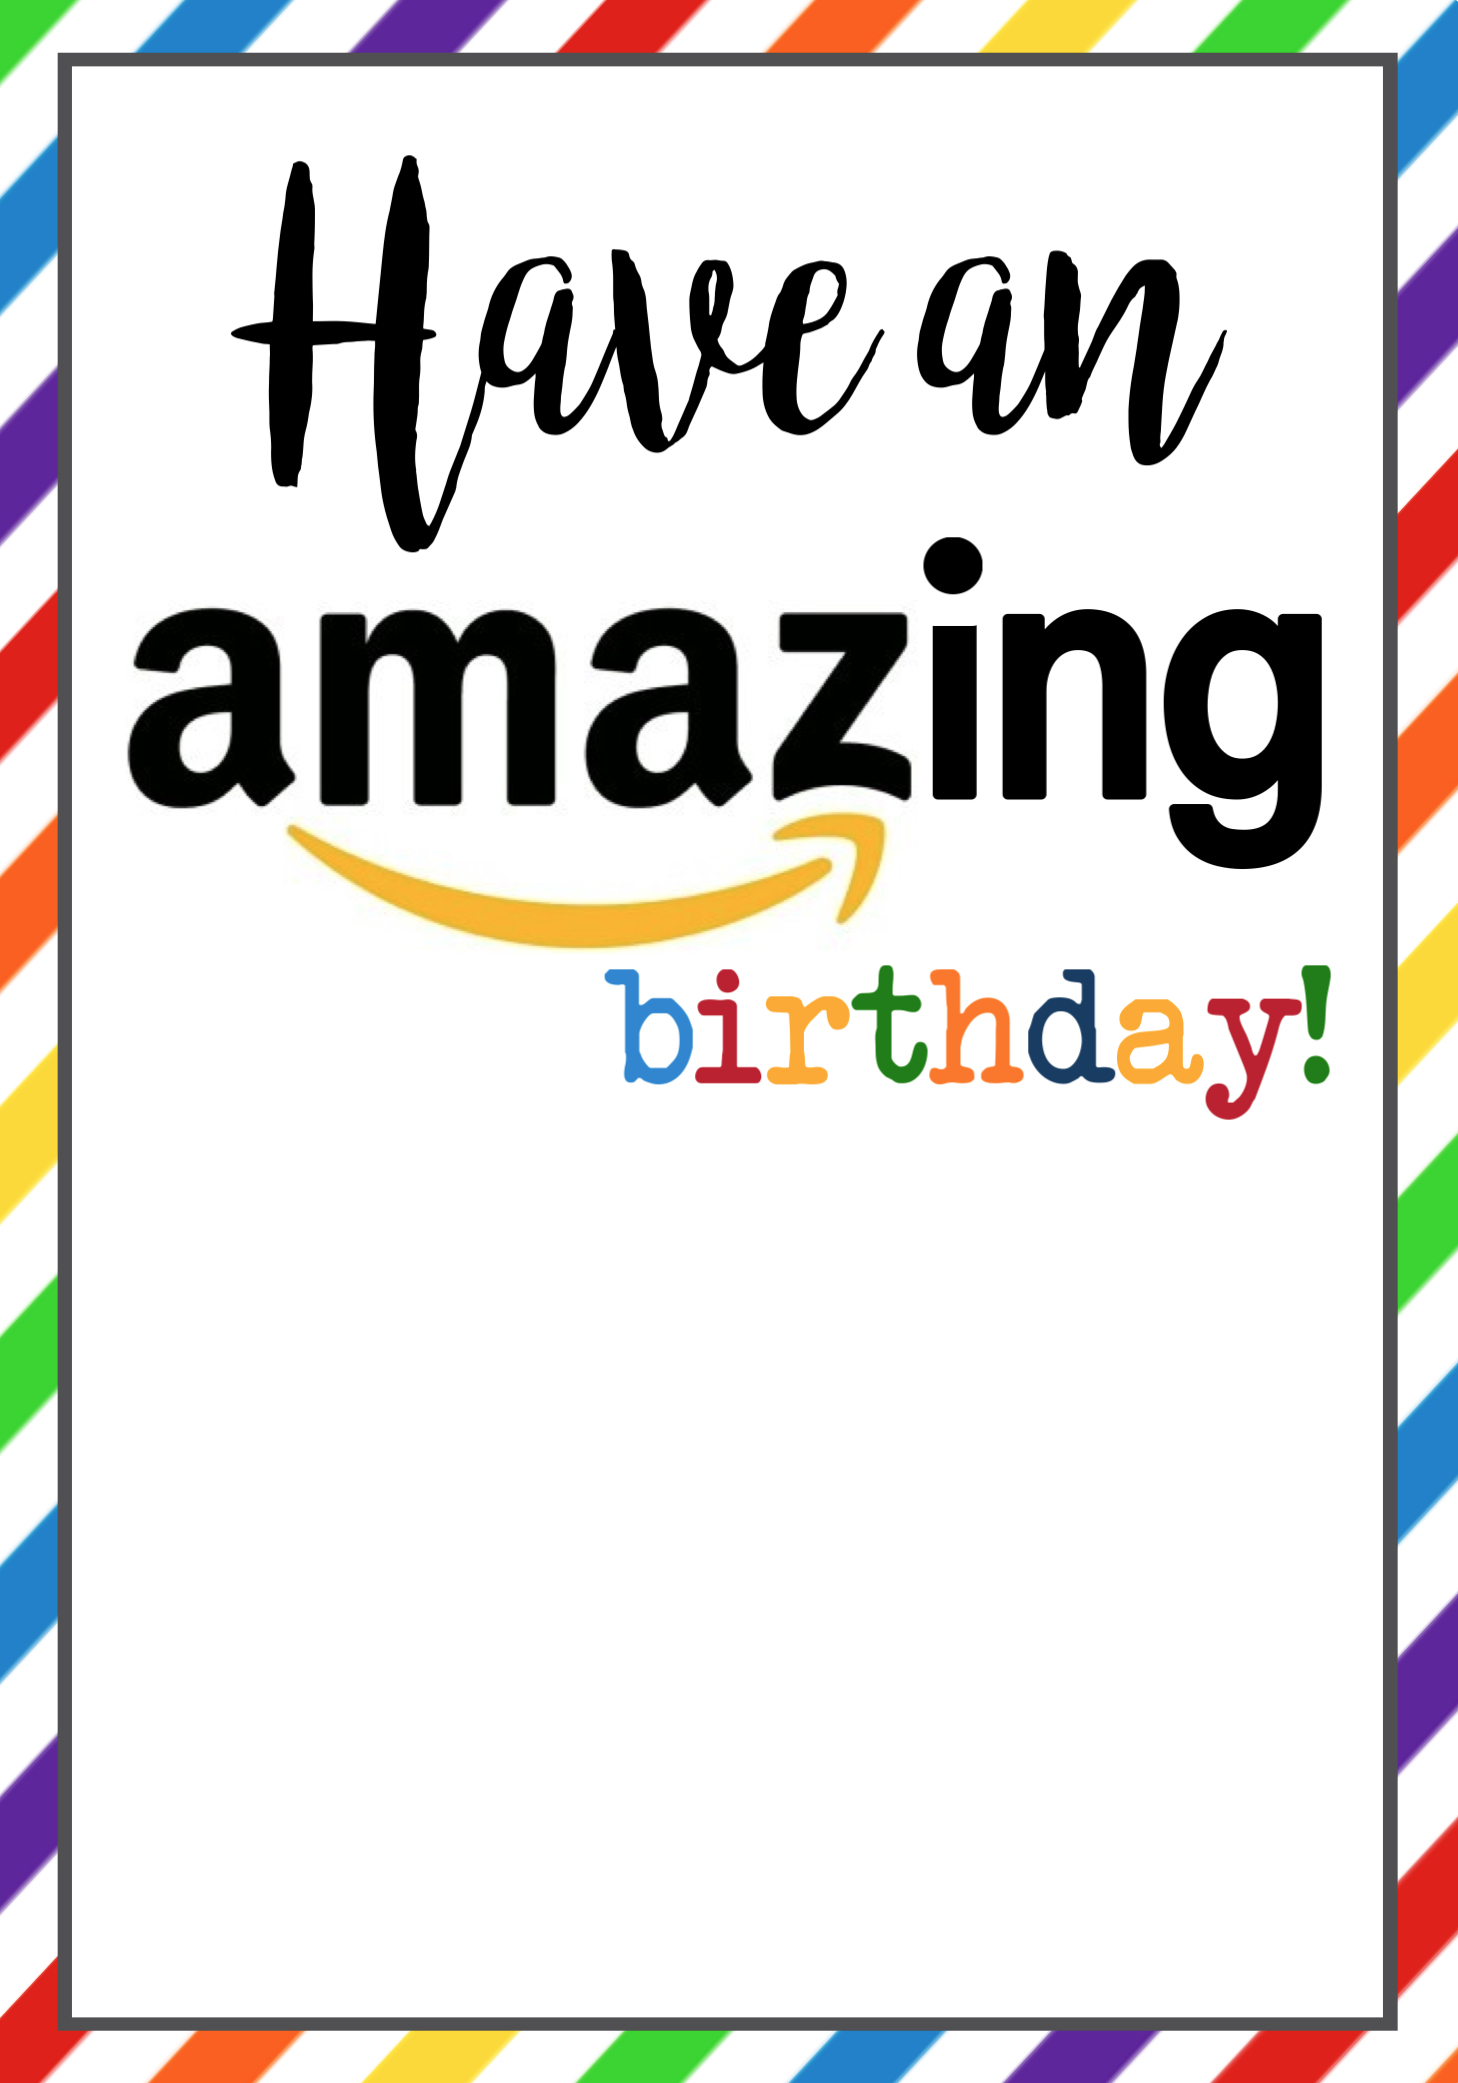 photo relating to Amazon Printable Gift Card titled Amazon Birthday Playing cards No cost Printable - Paper Path Style